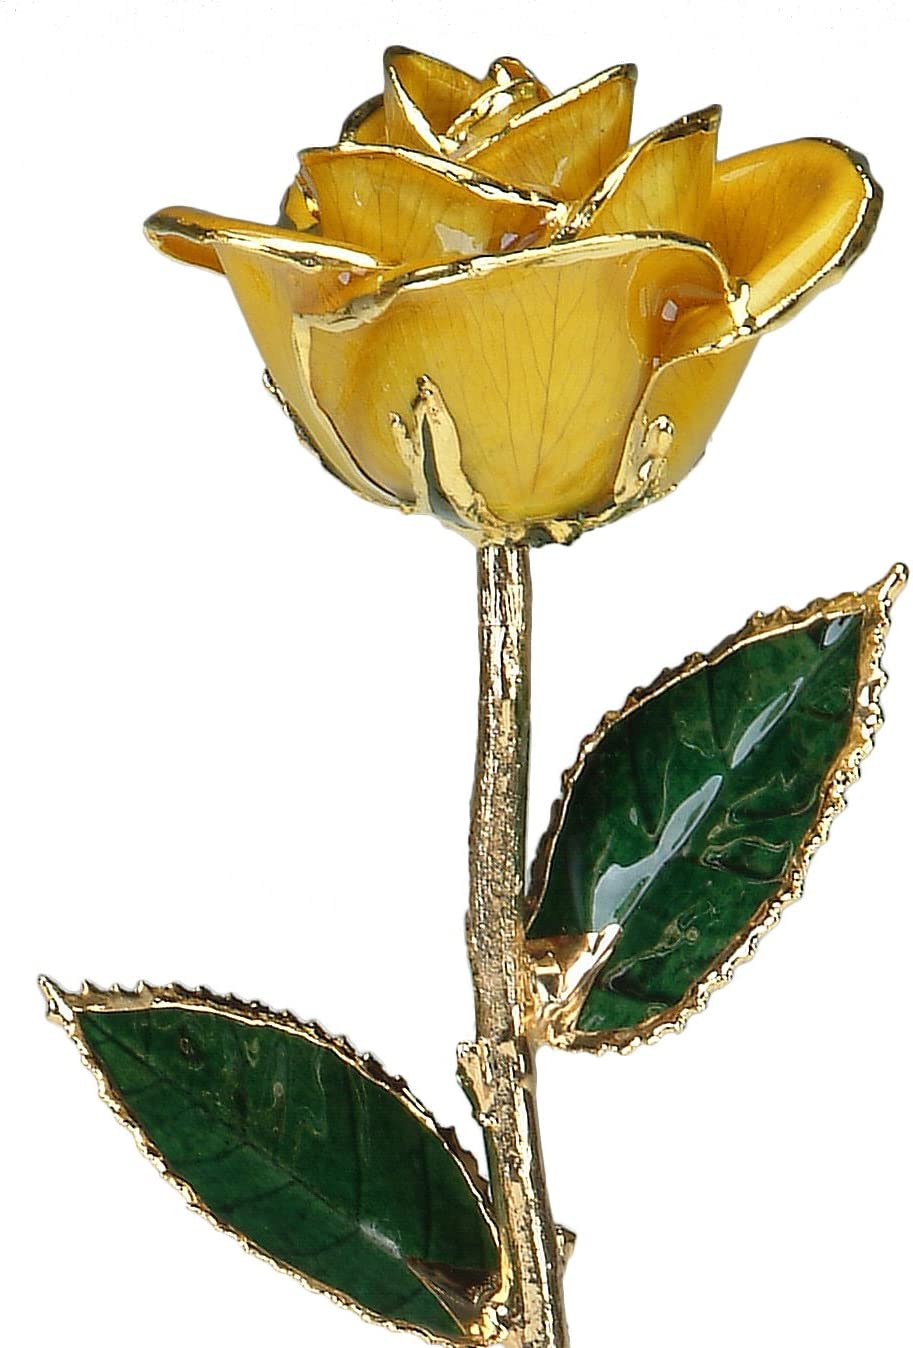 Living Gold Yellow 24k Gold Rose Real Rose Dipped in Gold